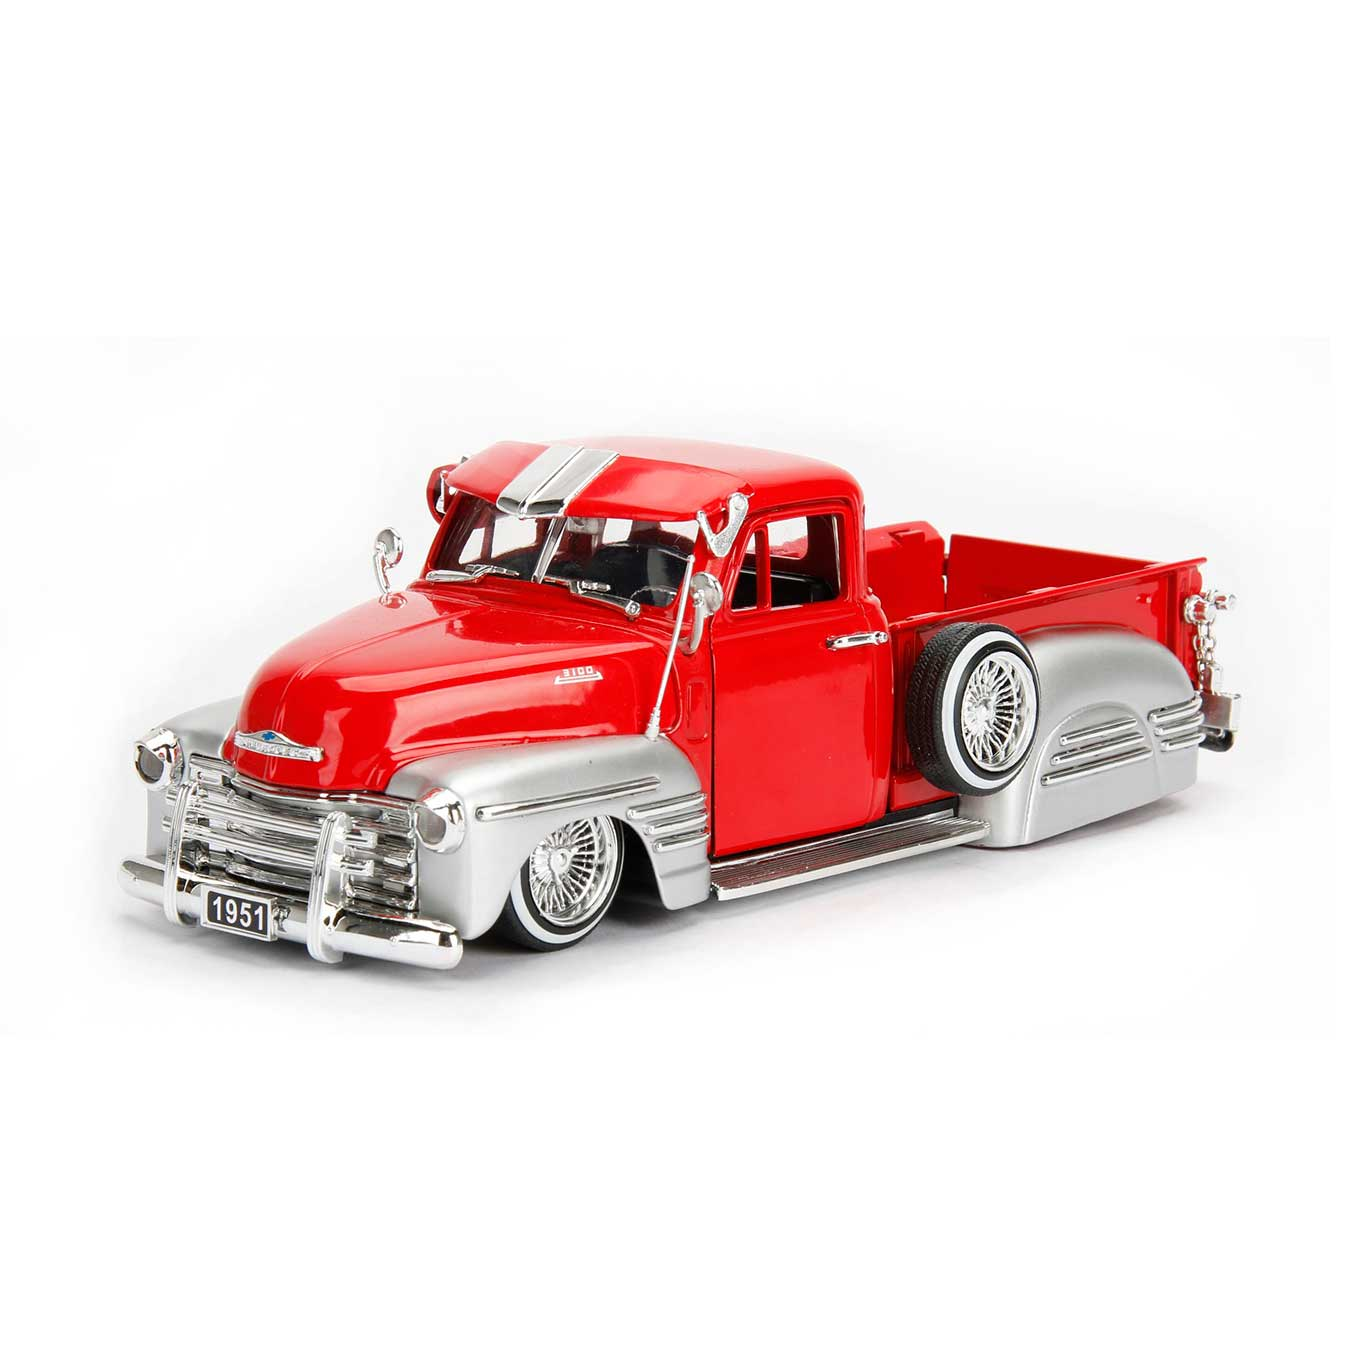 Just Trucks Series 1951 Chevy Pick Up Truck Red 1 24 Scale Chevrolet Police Car Quick View